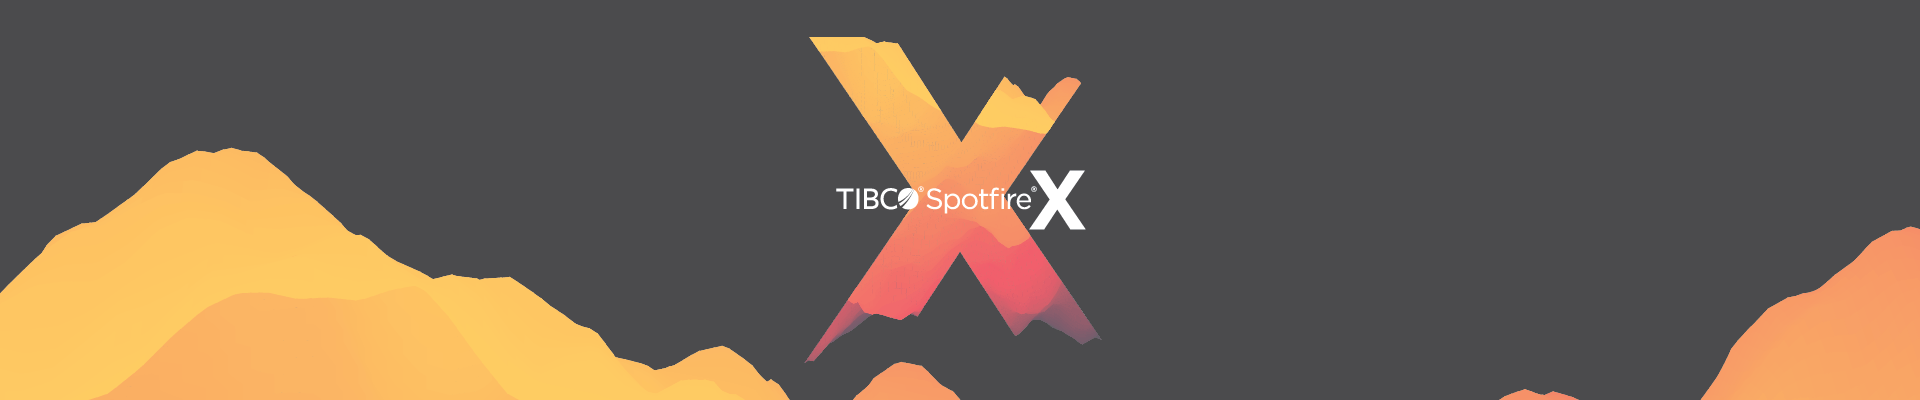 AI and TIBCO Spotfire X: Inside and Out